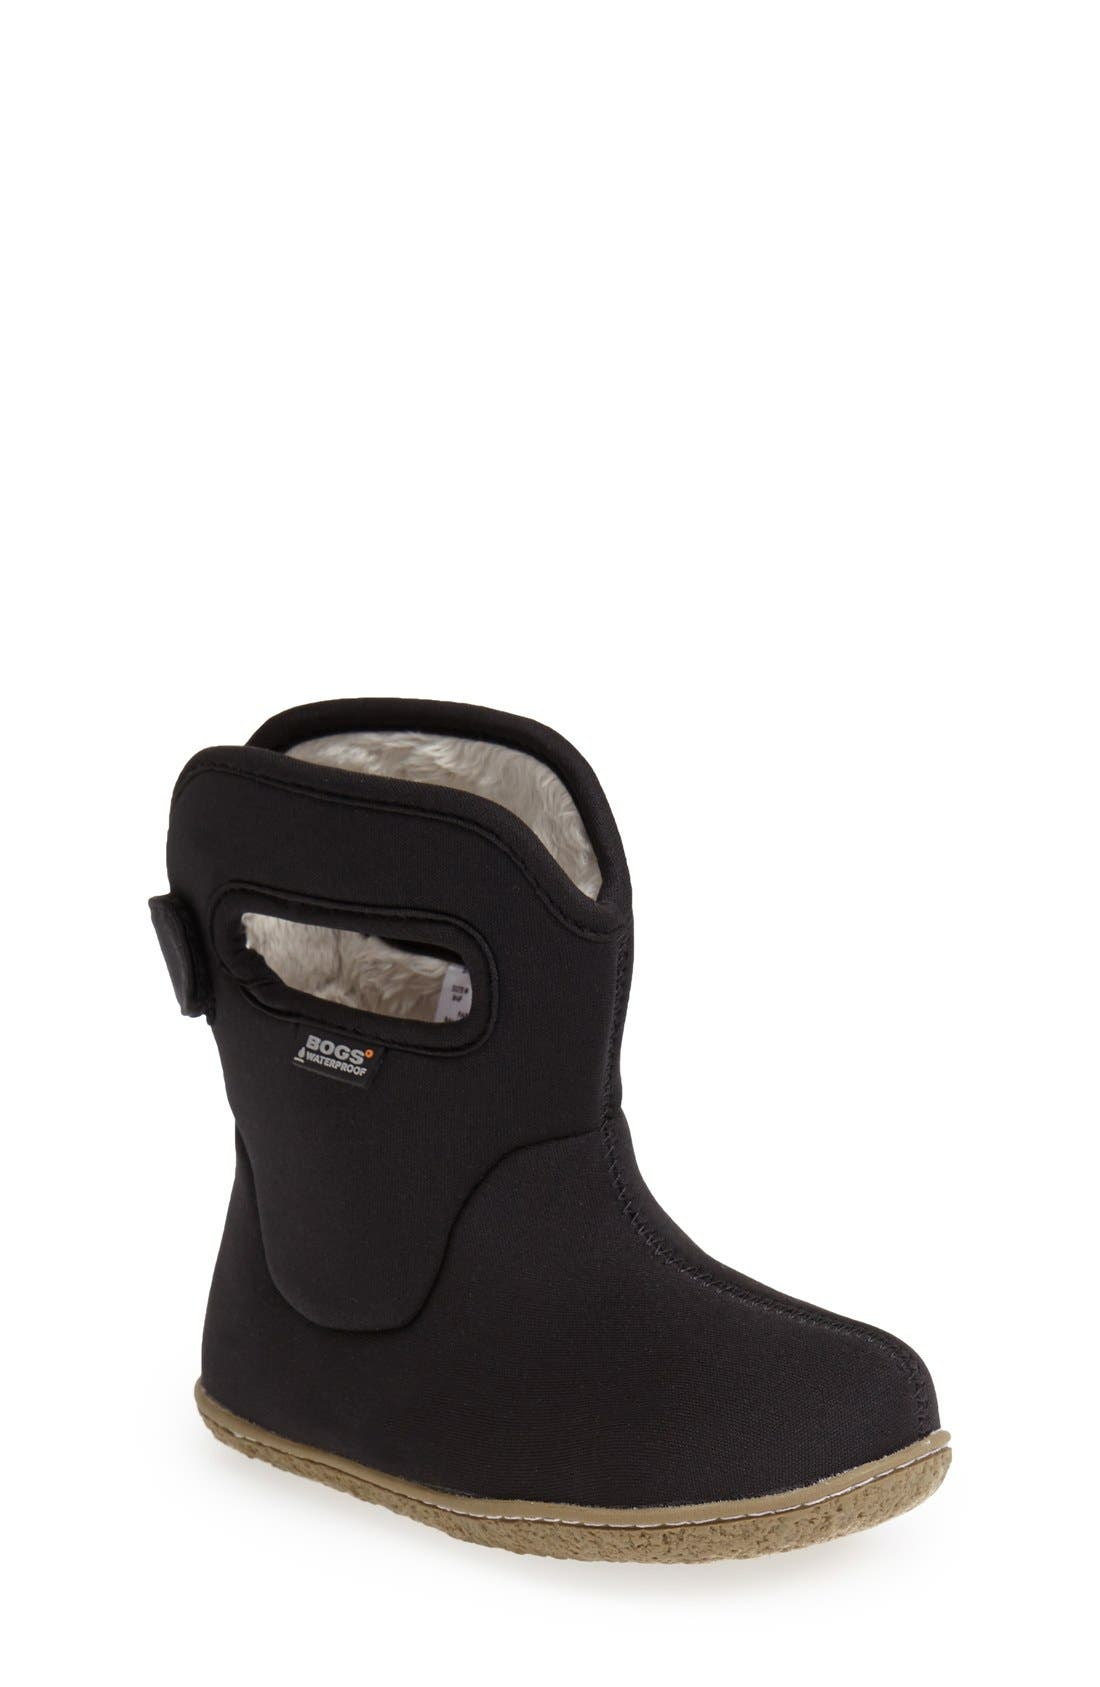 'Baby Bogs' Waterproof Boot